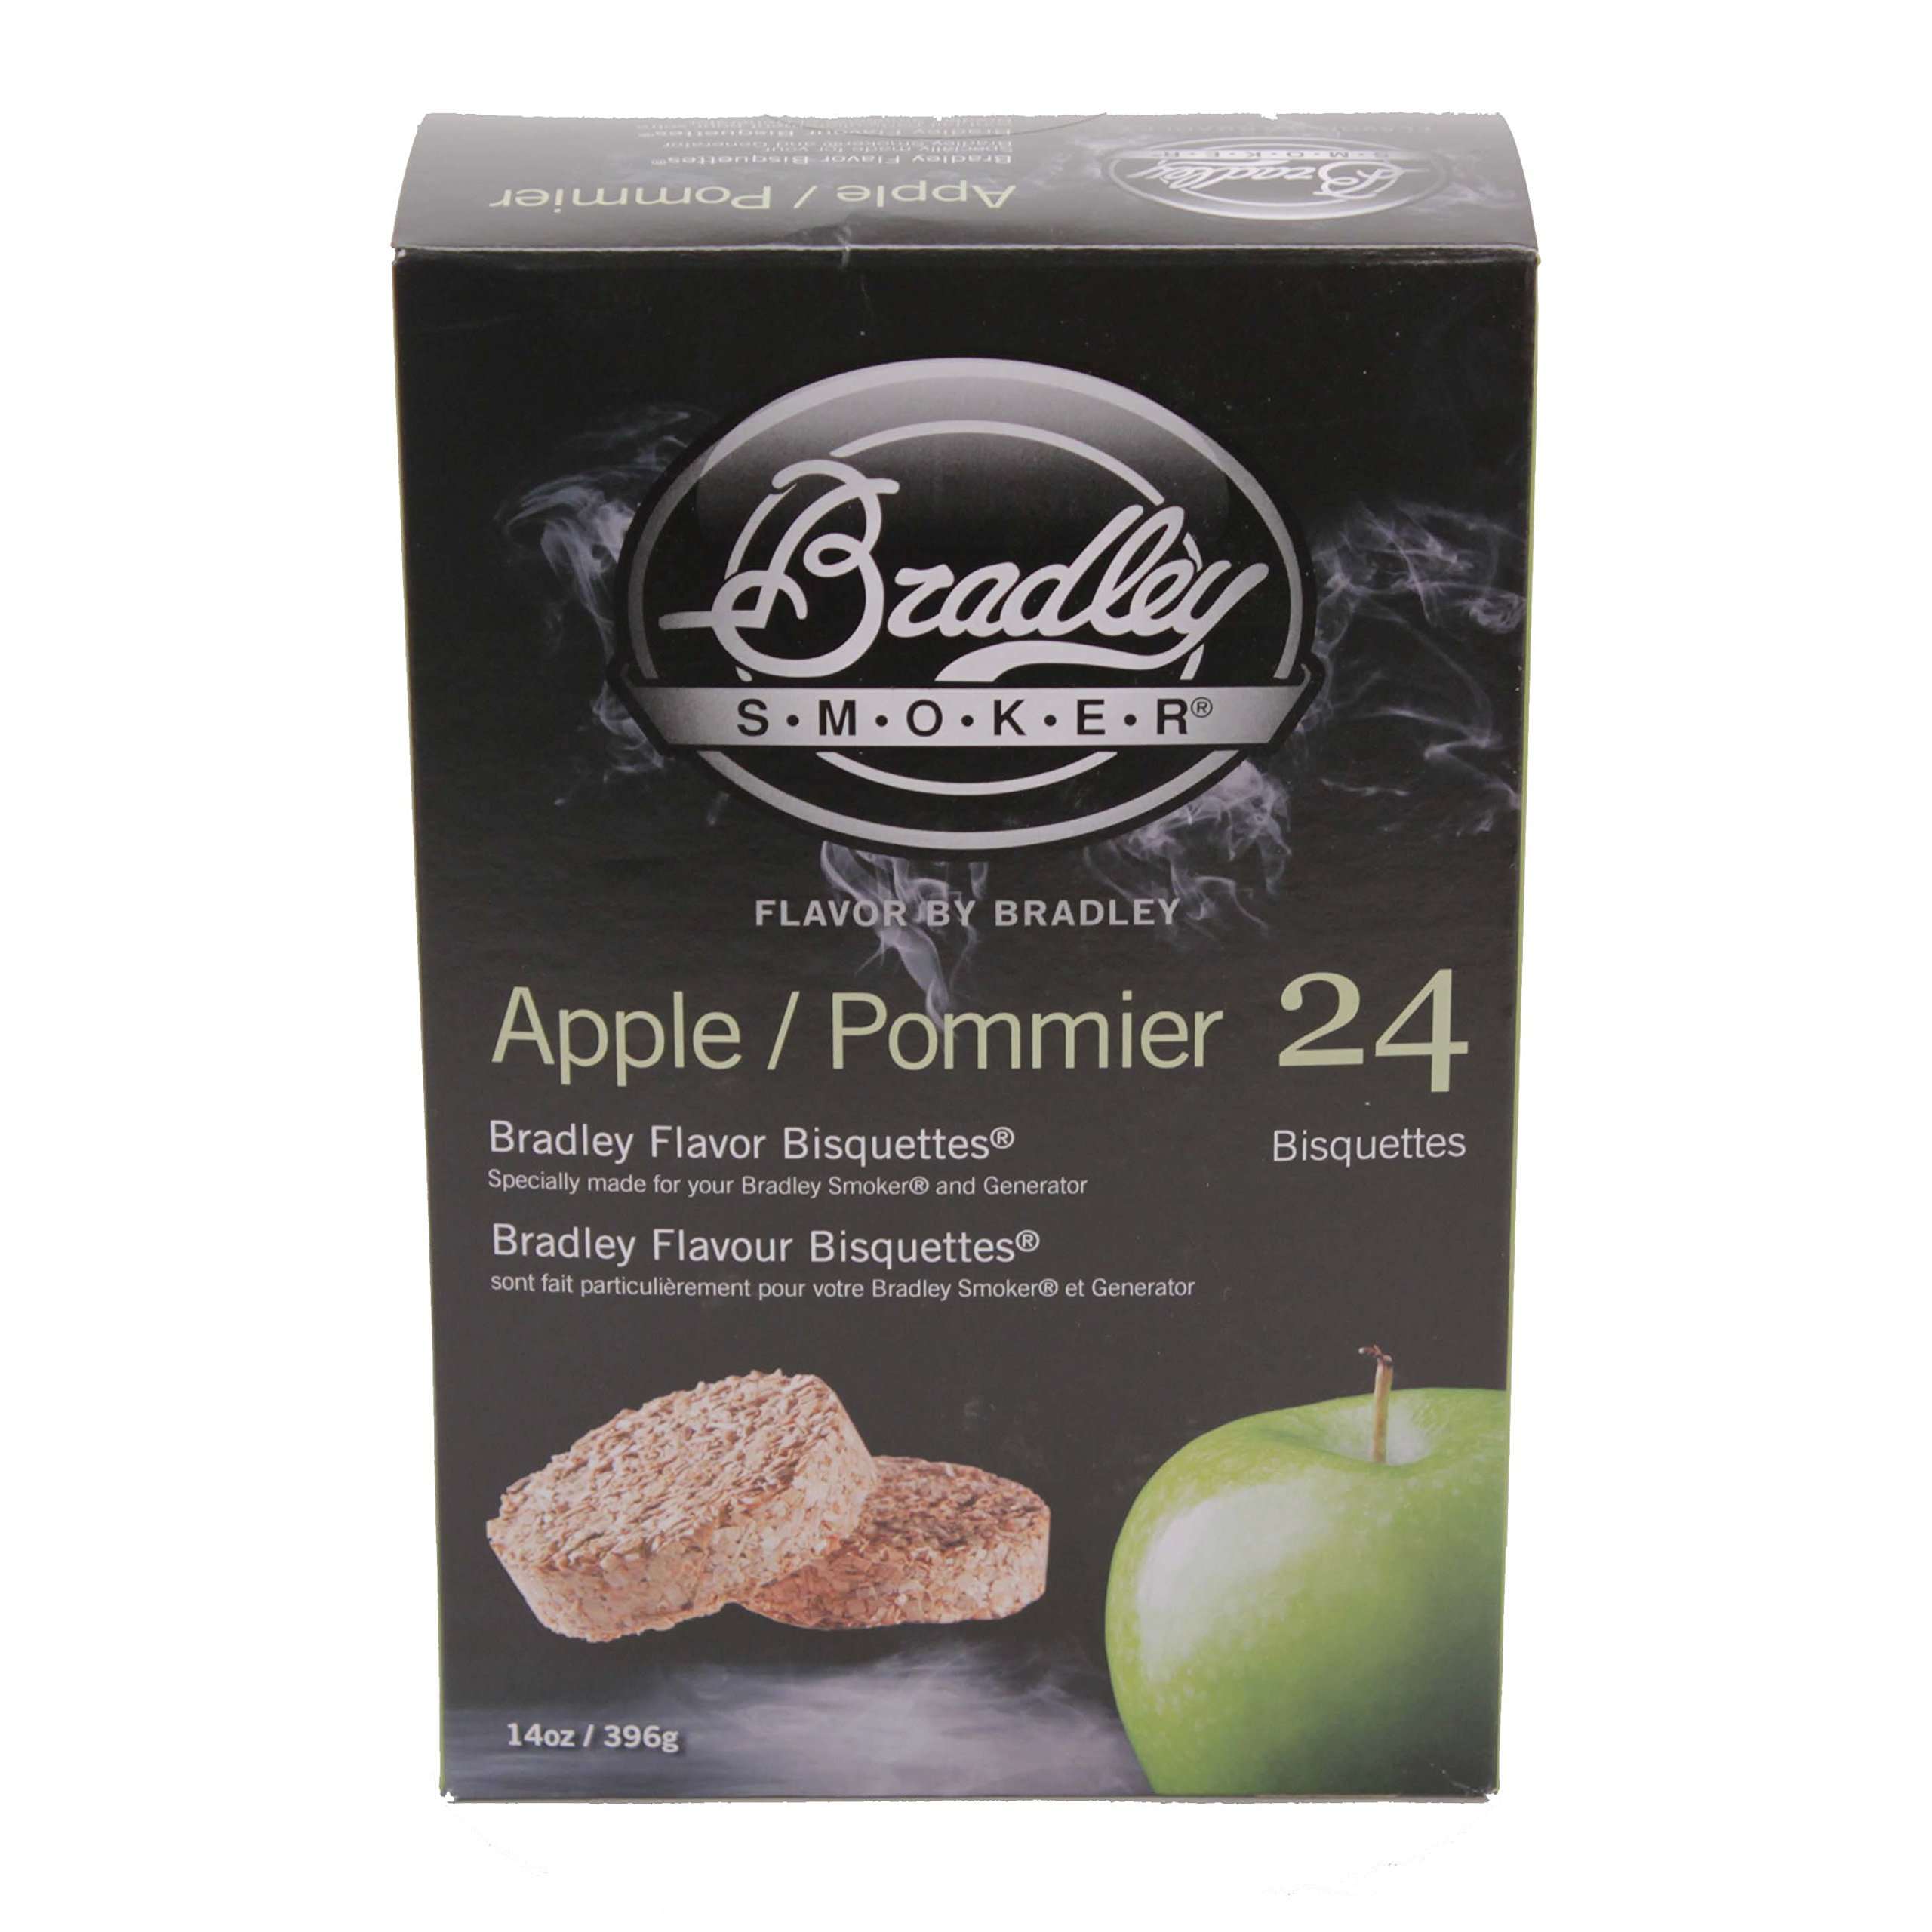 Bradley Smoker BTAP24 Bisquettes, Apple, 24-Pack, One Size by Bradley Smoker